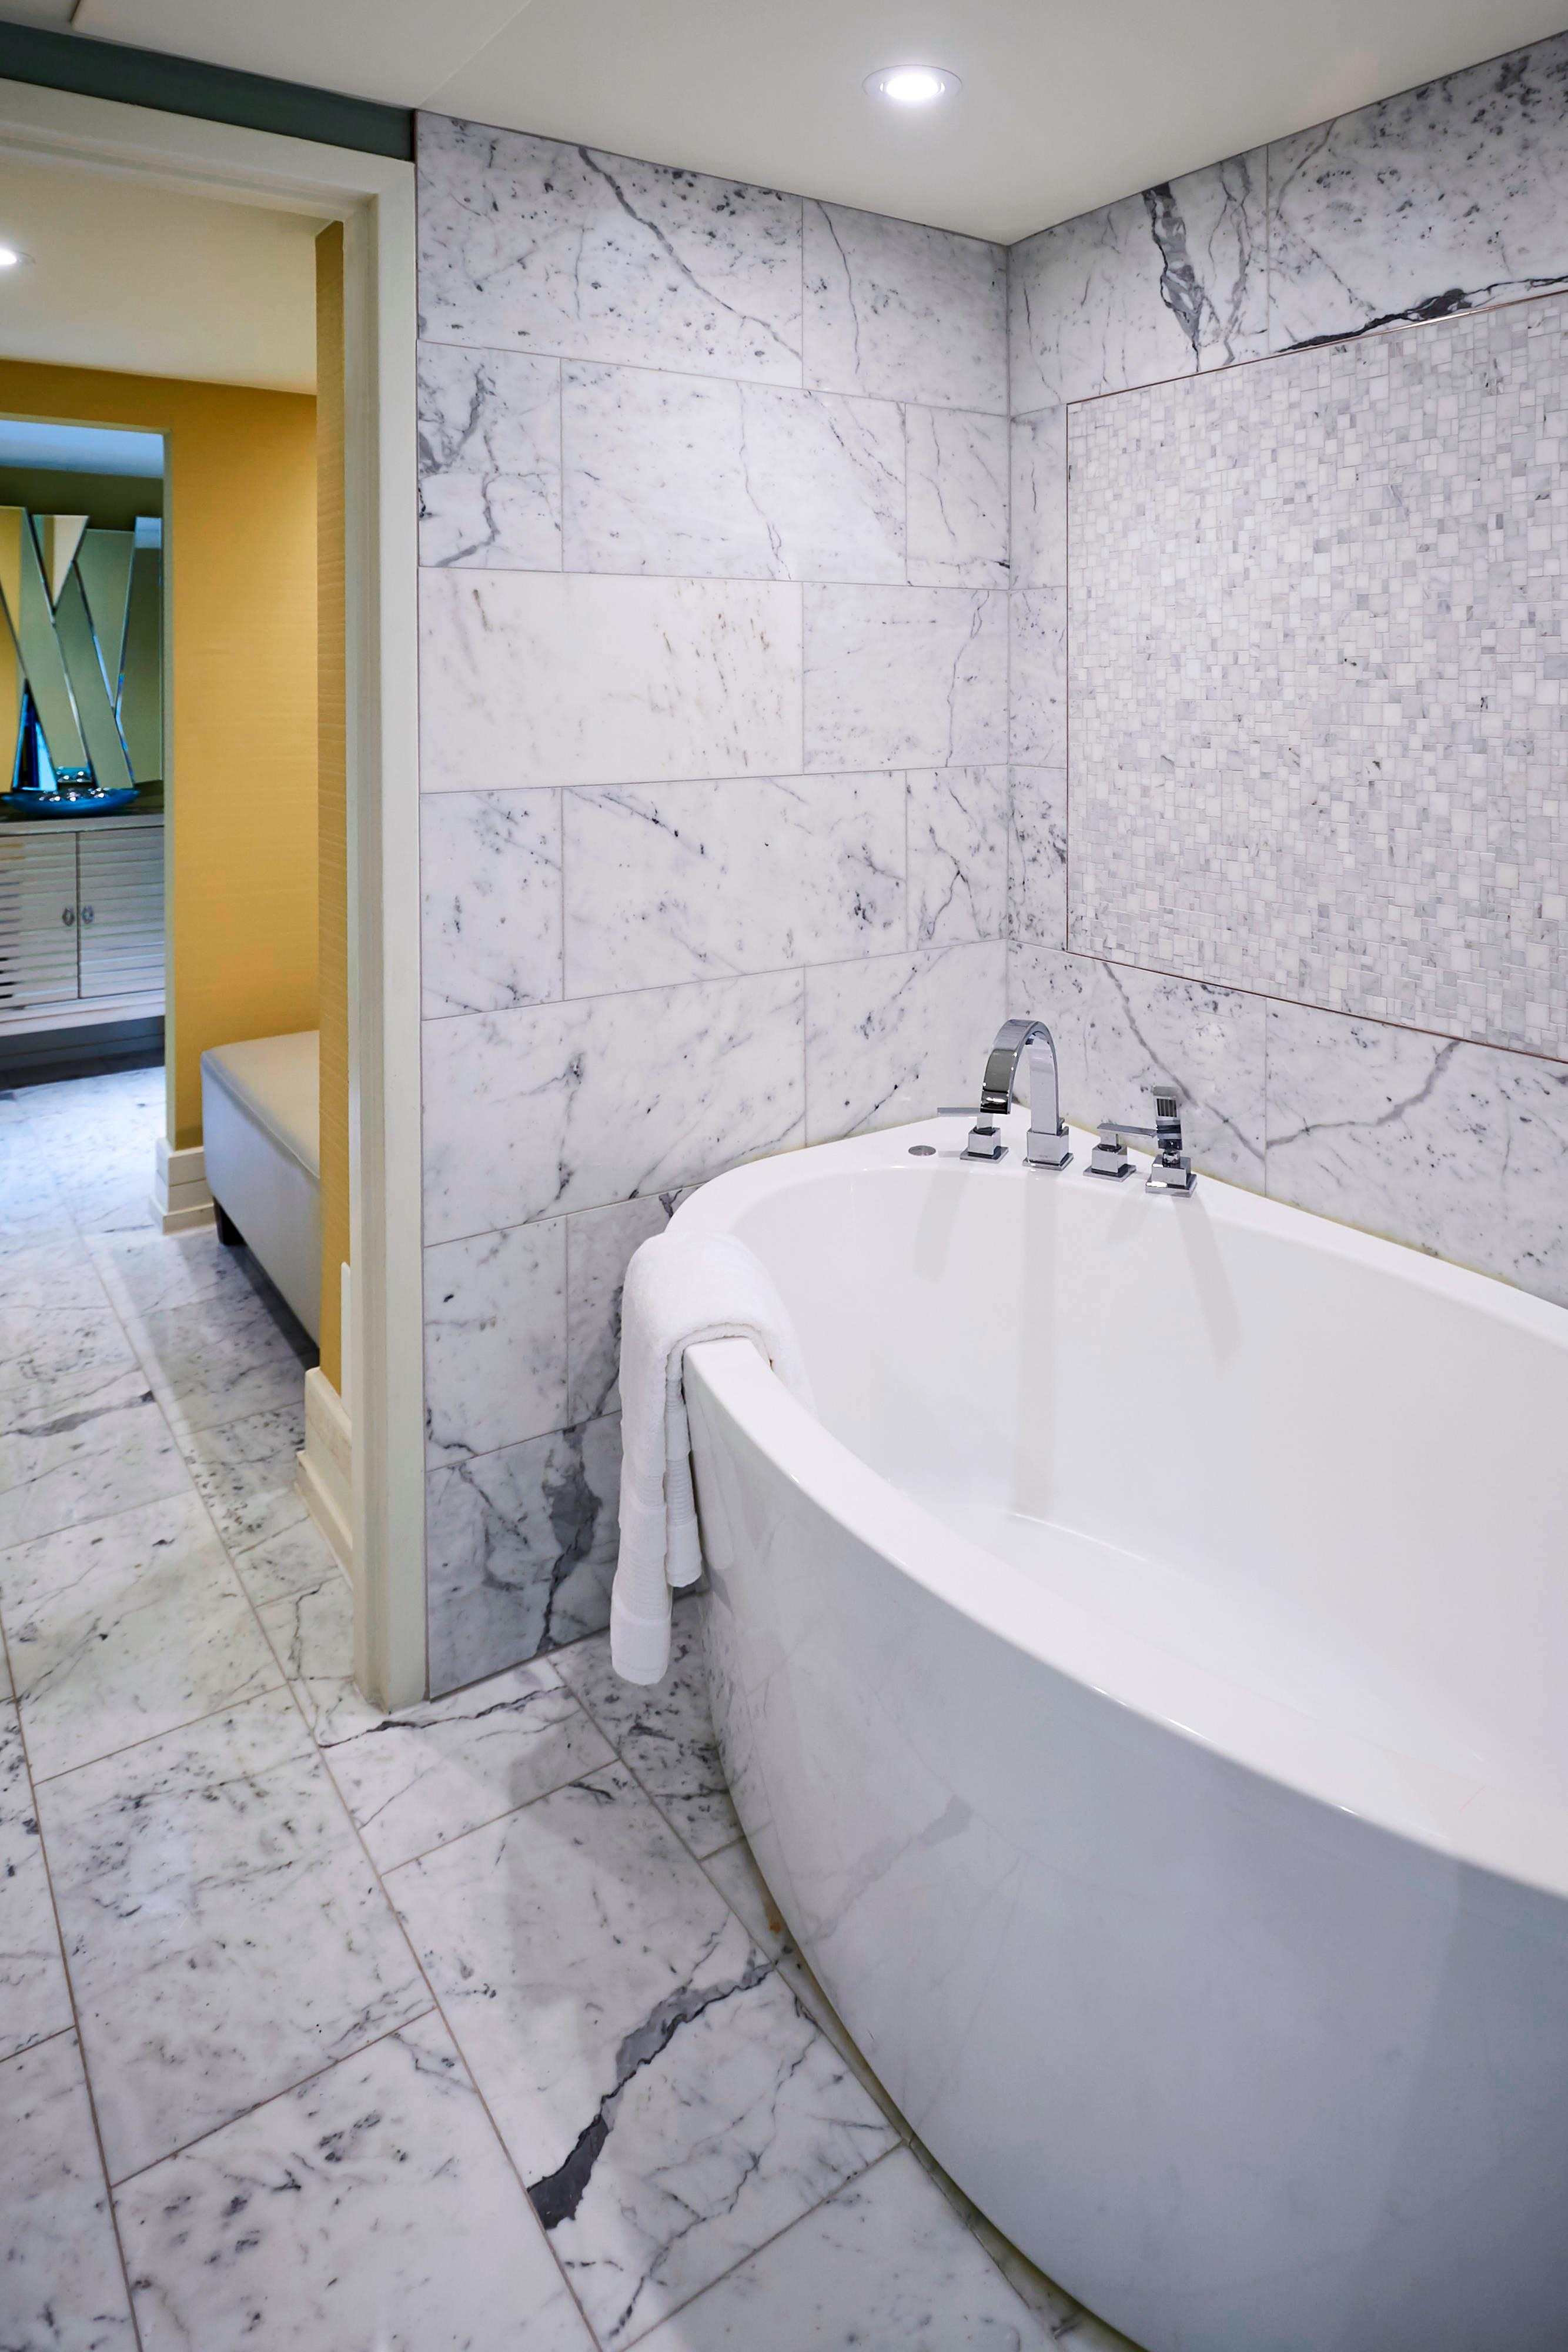 Prime Minister Suite - Bathroom